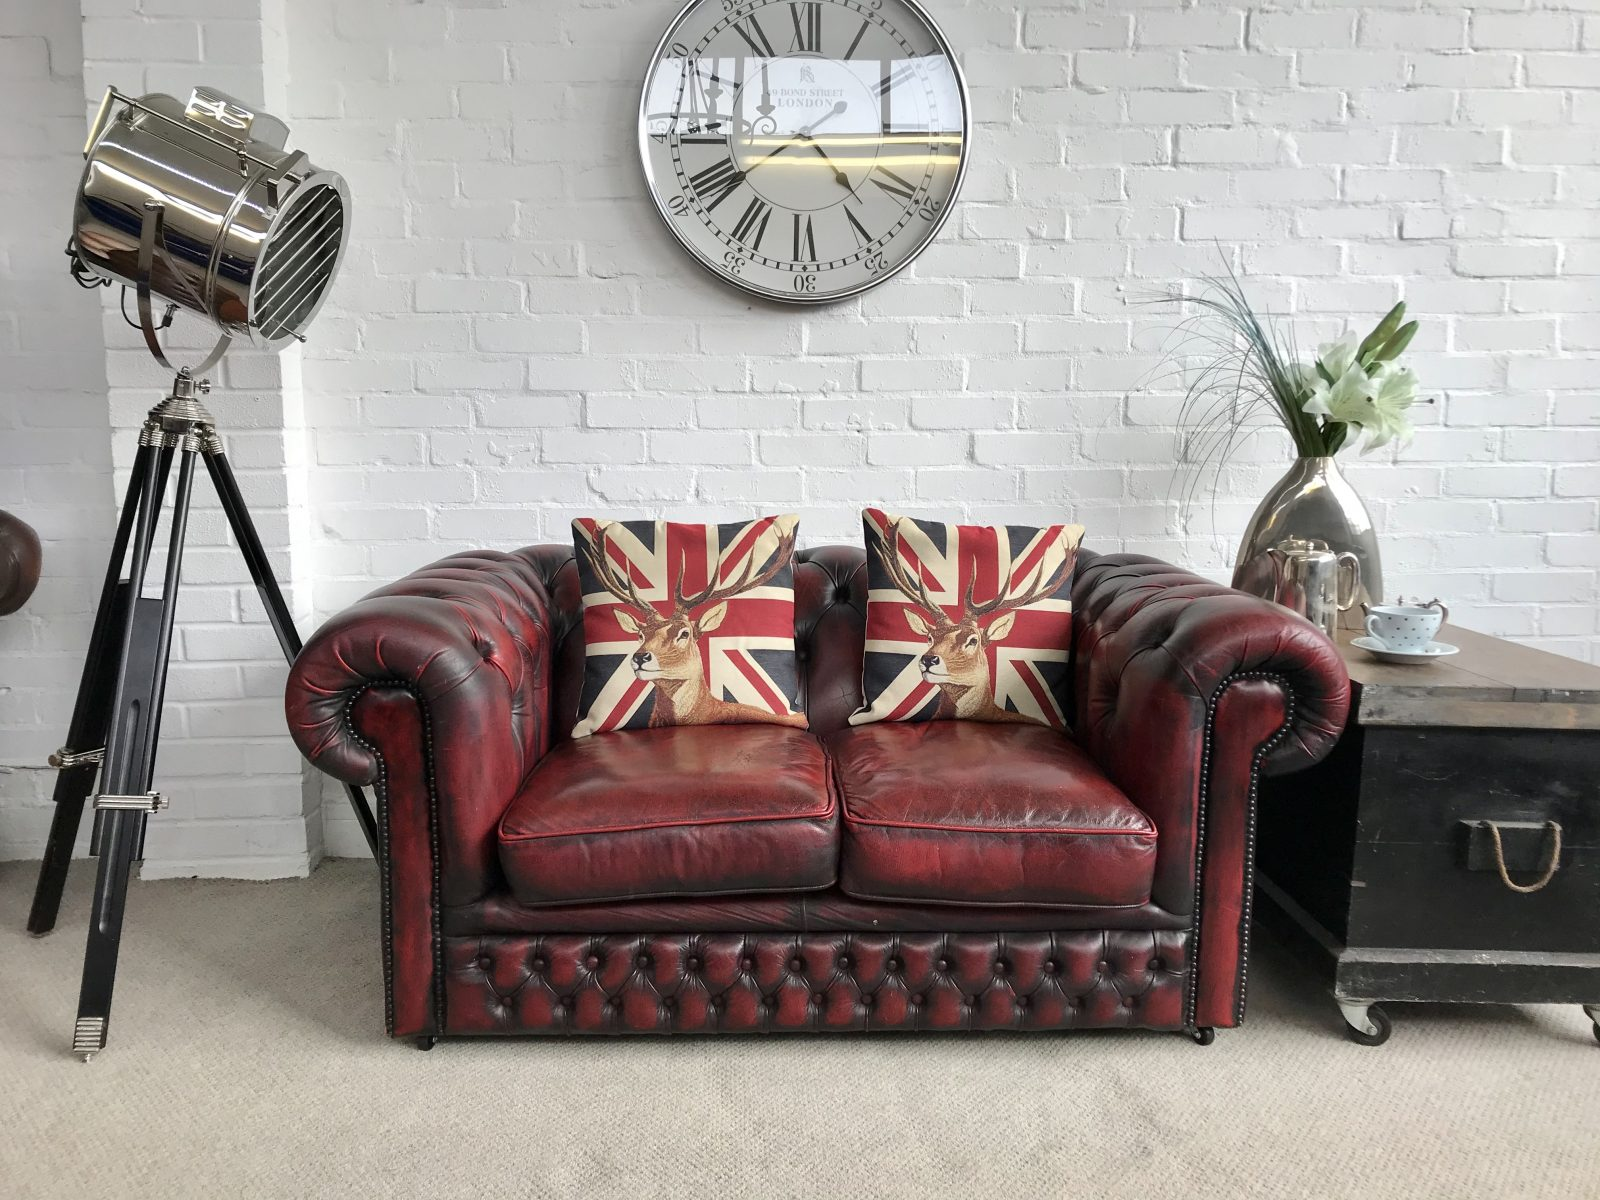 Vintage Oxblood Red Chesterfield Sofa………SOLD.